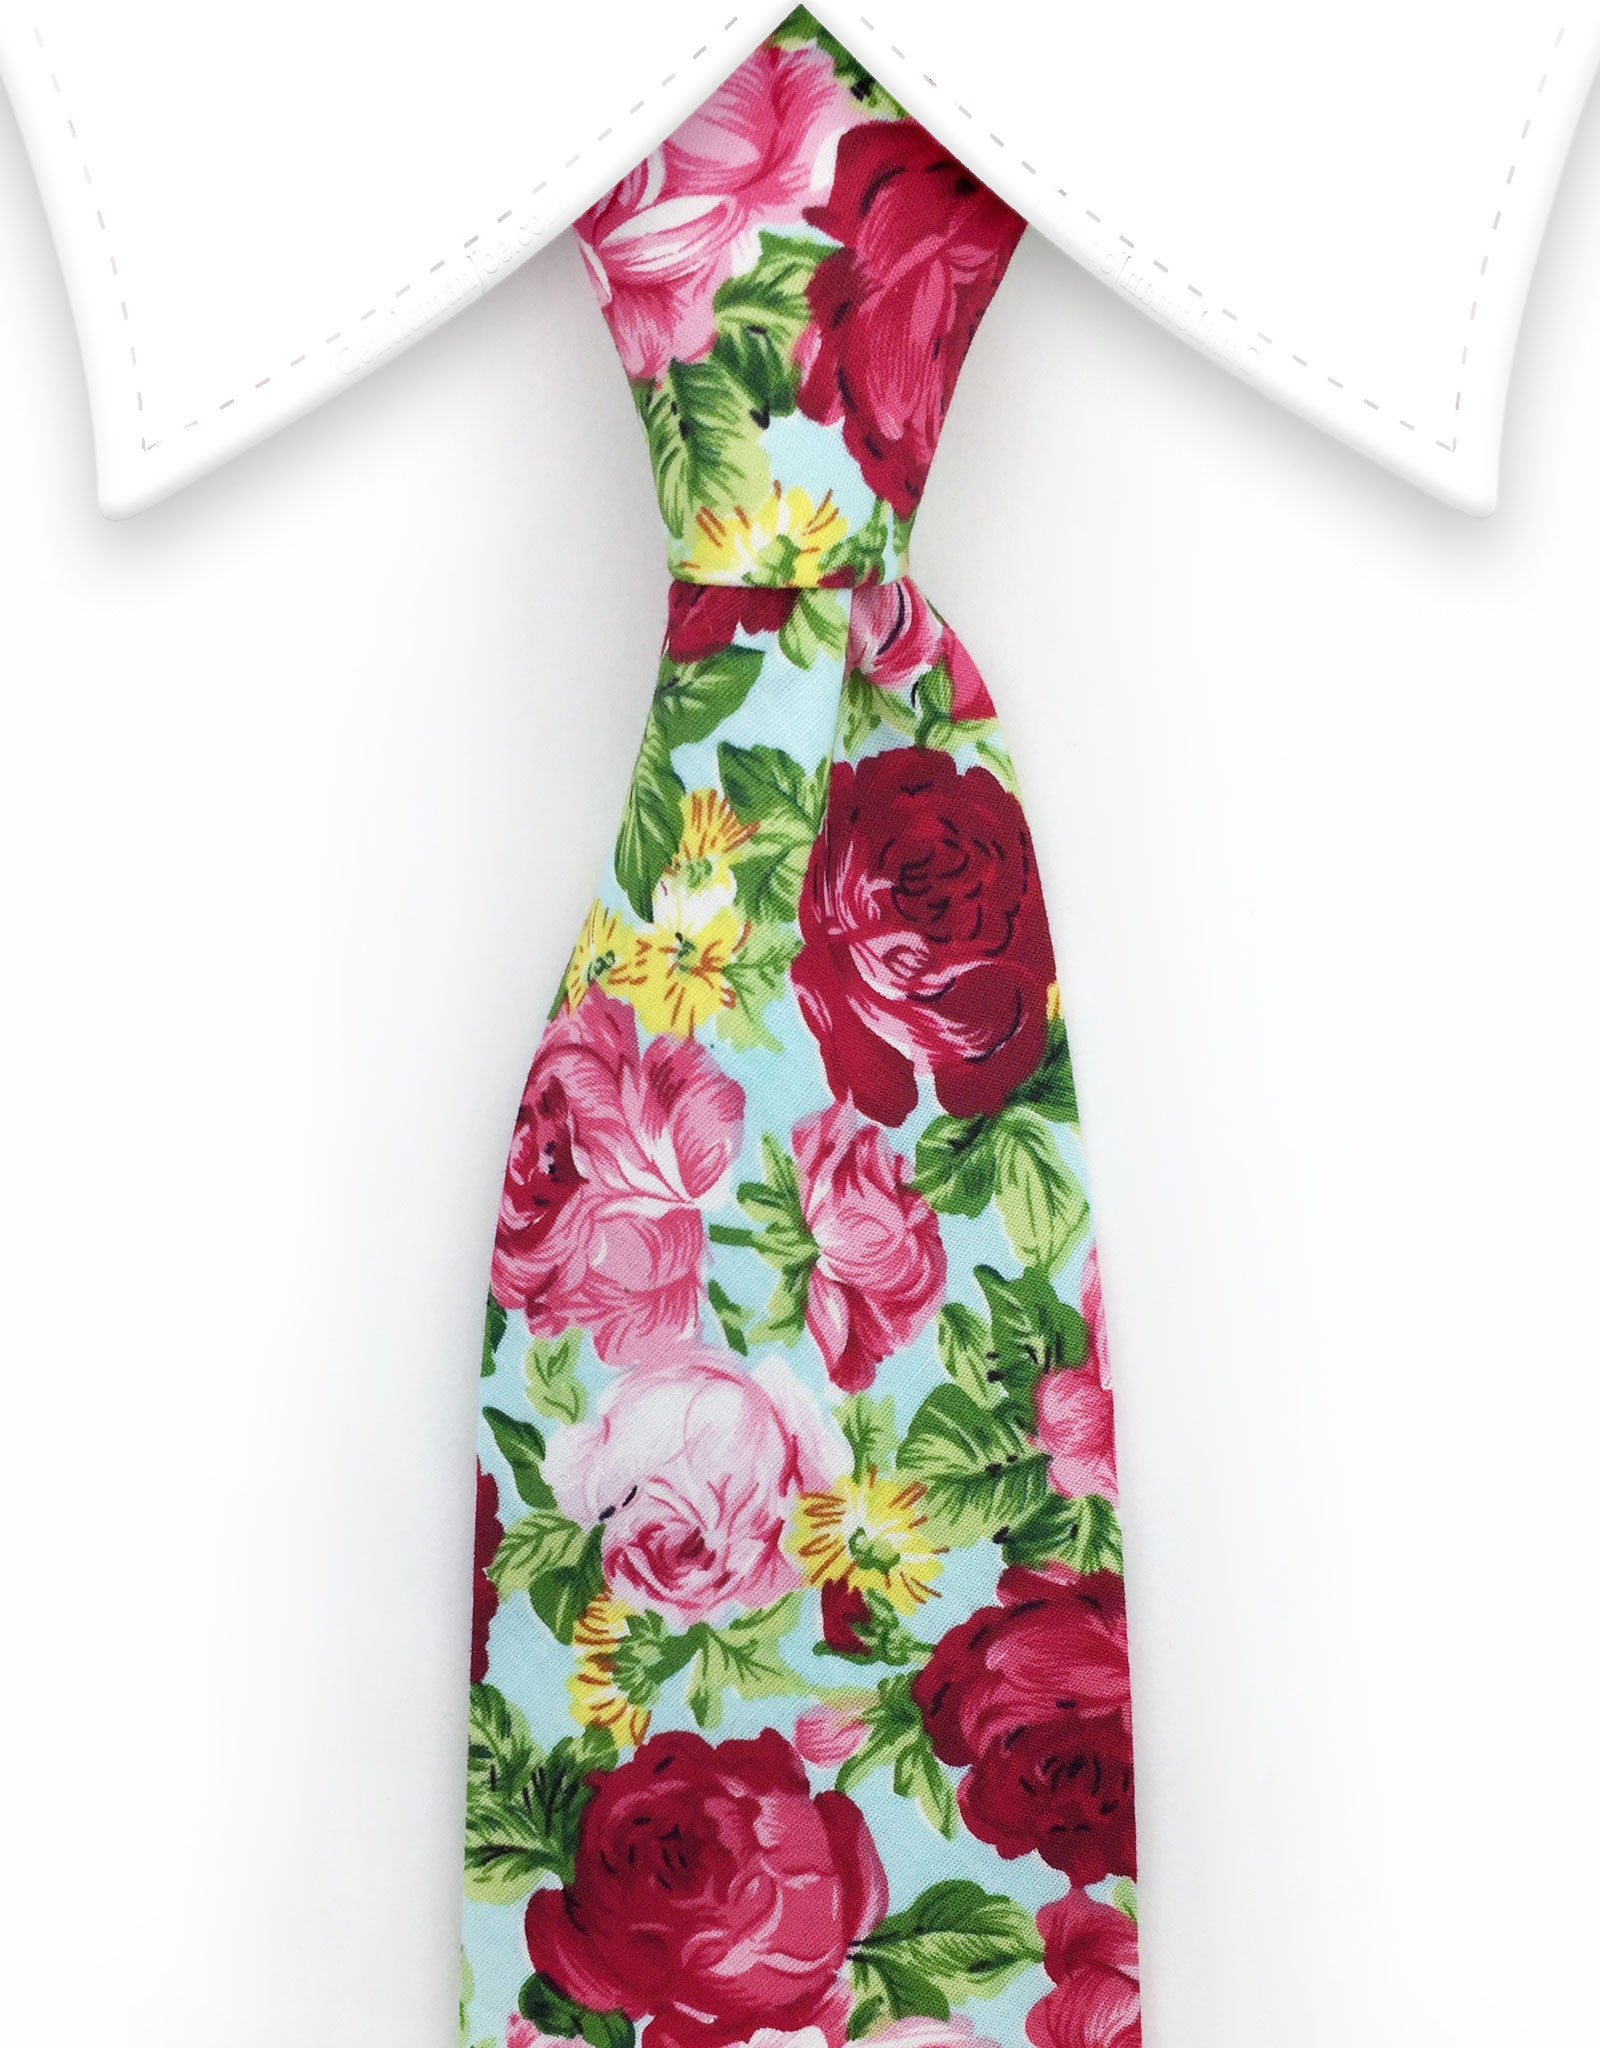 Seafoam green floral tie with pink roses